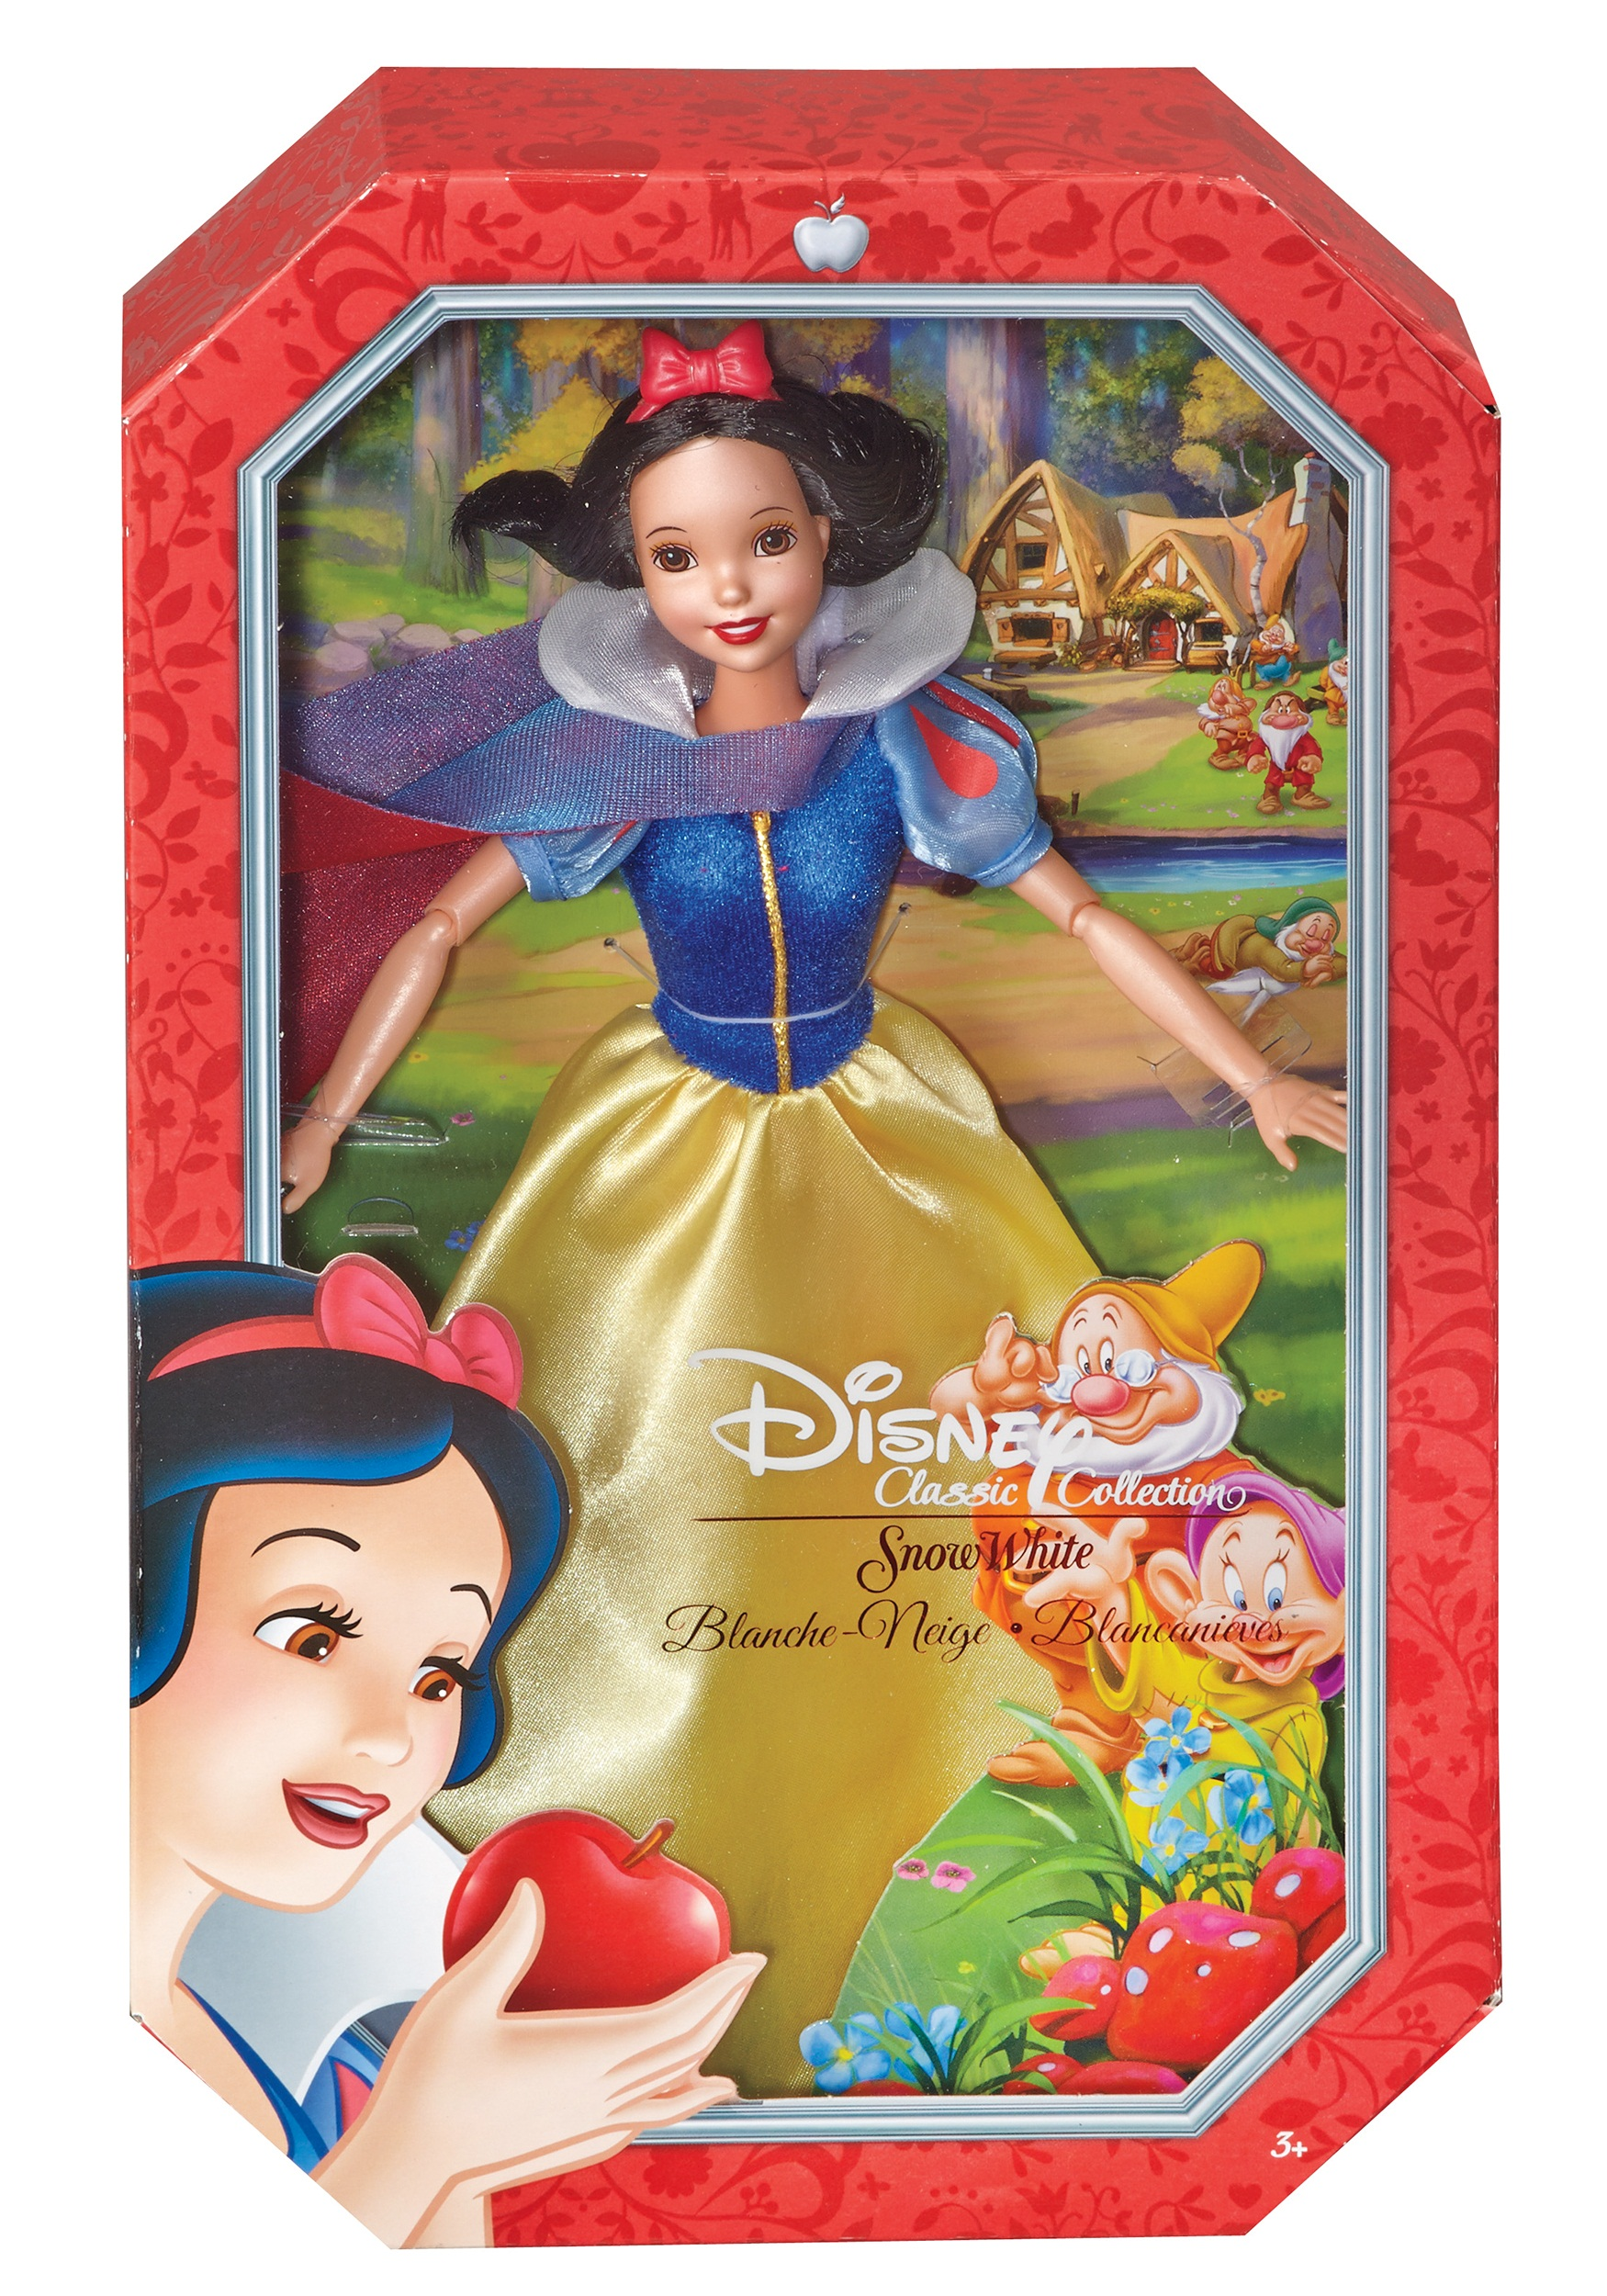 Disney Snow White Doll And Collectable Figures Dolls, Clothing & Accessories Dolls